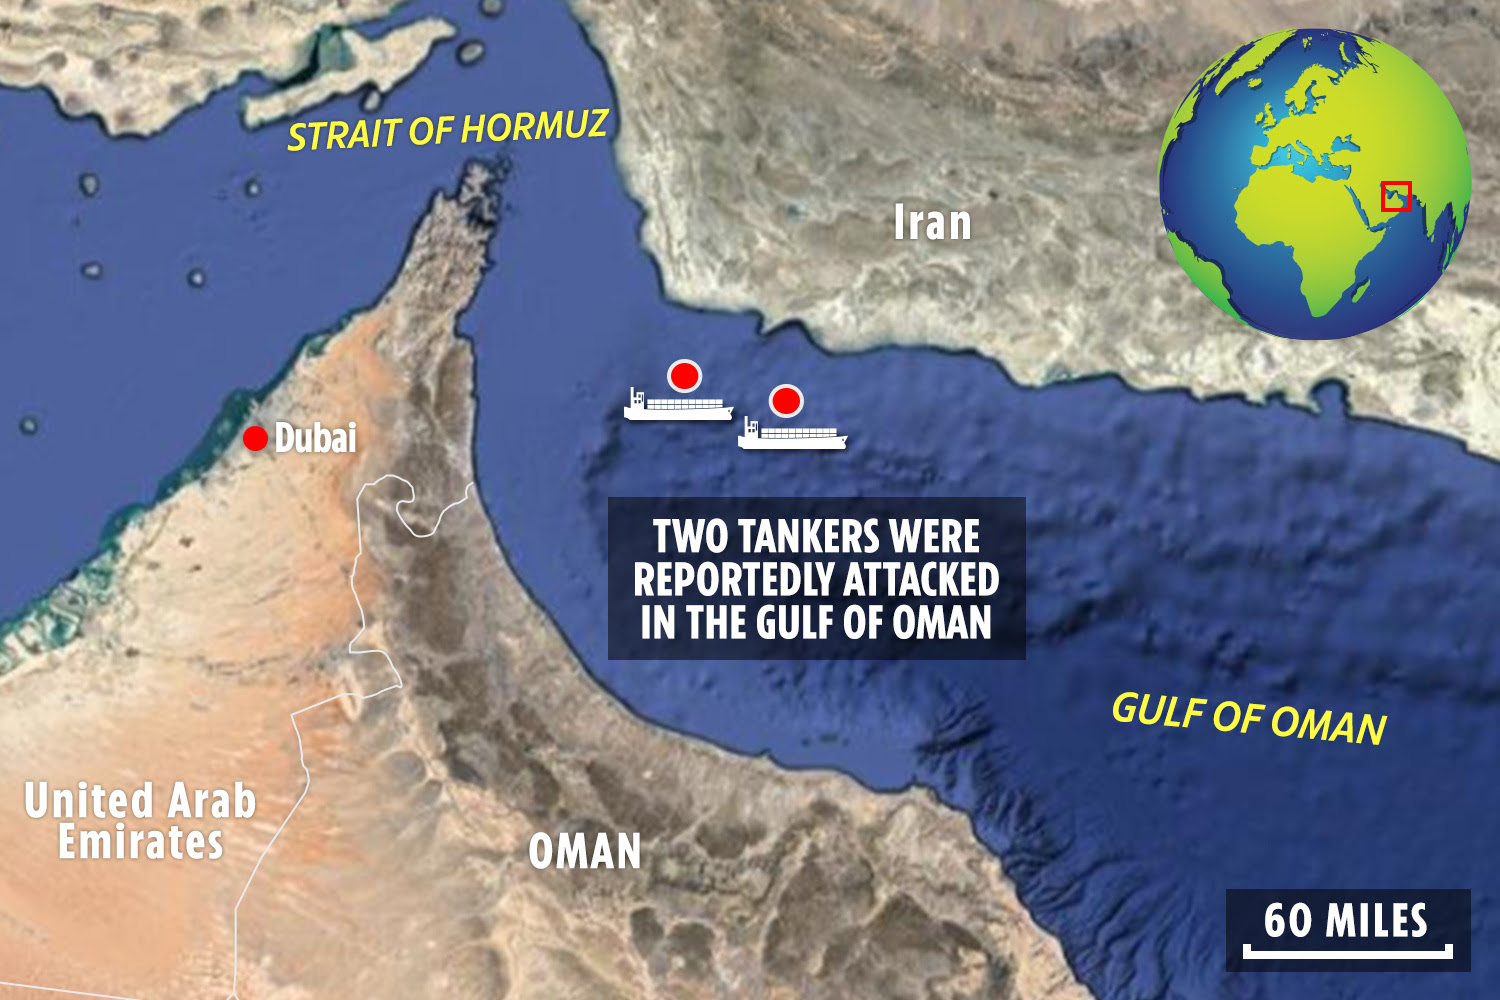 The incident reportedly happened in the Gulf of Oman this morning